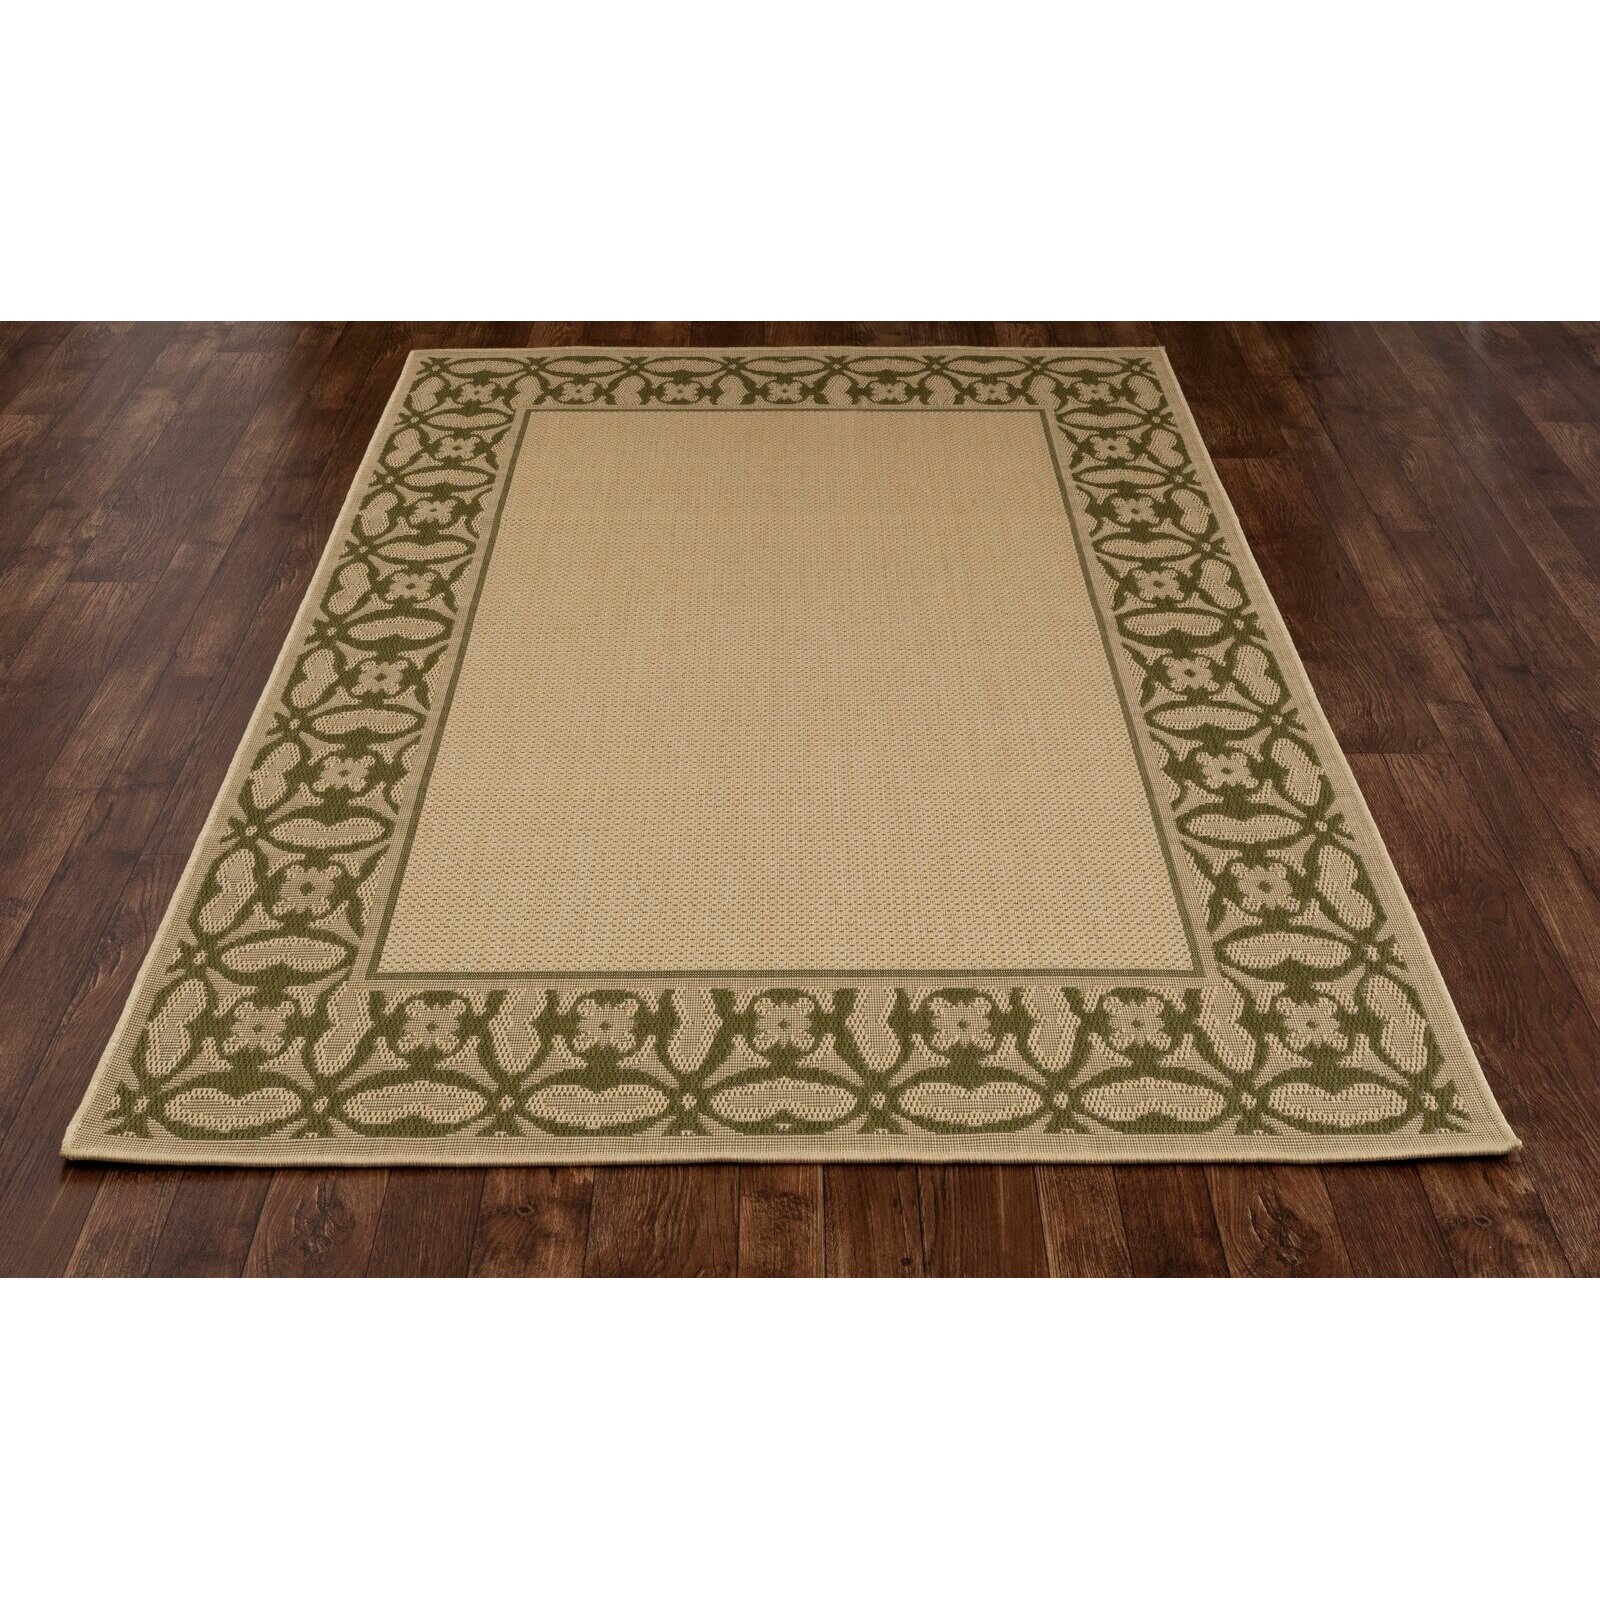 Art carpet plymouth green beige indoor outdoor area rug for Indoor outdoor carpet green